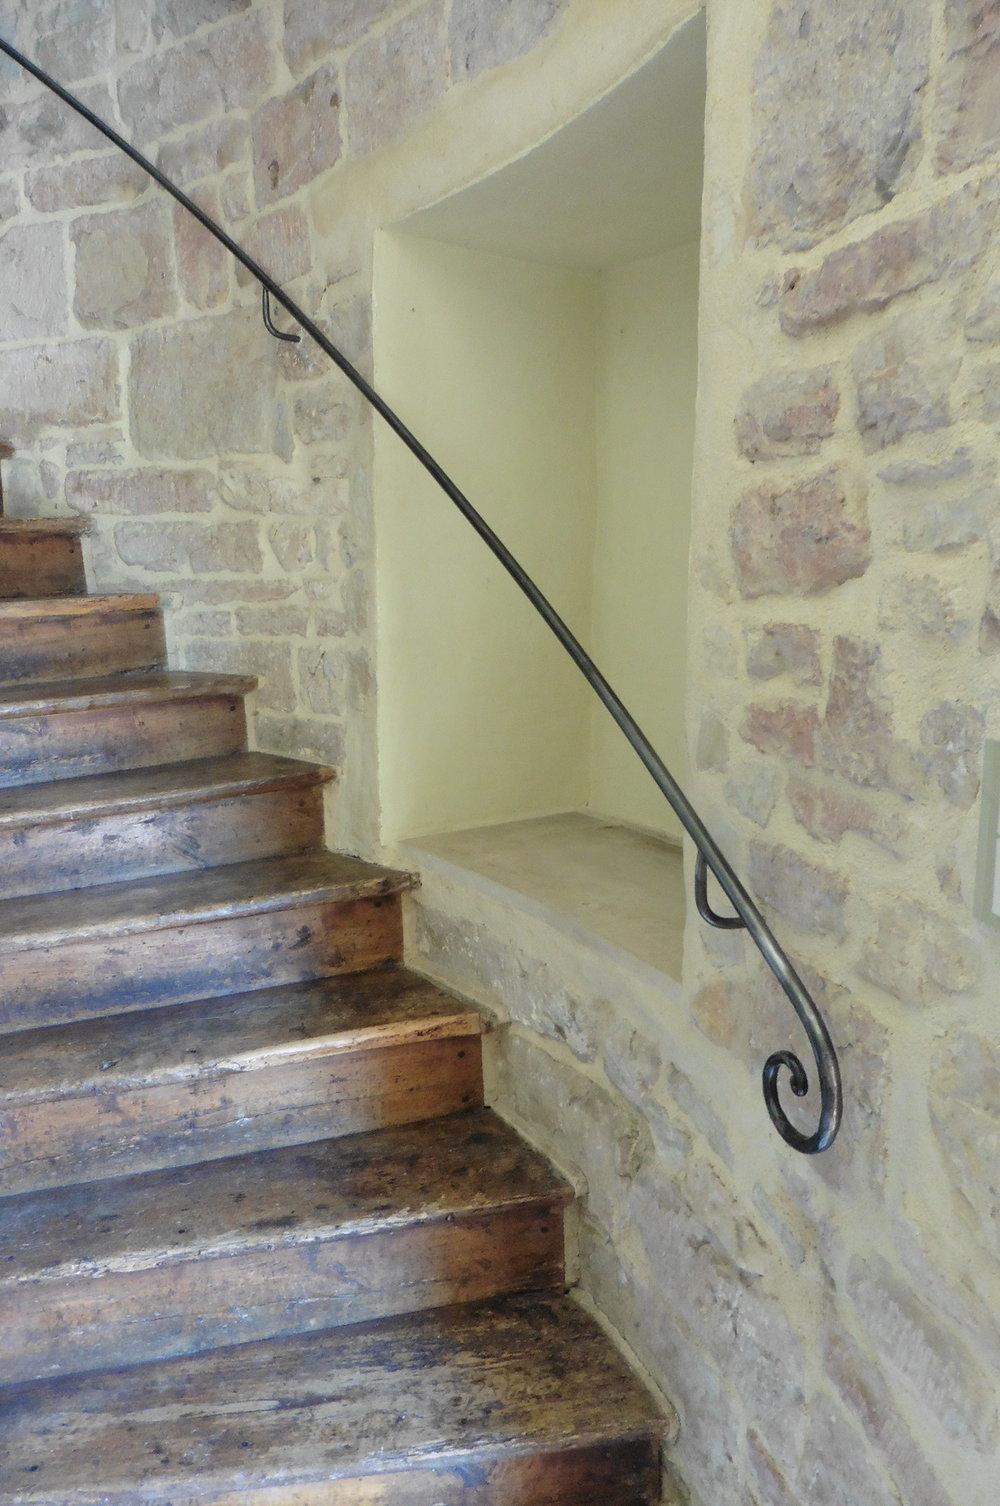 A tower, a narrow curving staircase and the need for a handrail for a safe ascent and descent. Very simple, forged end handrail, finished in clear varnish.